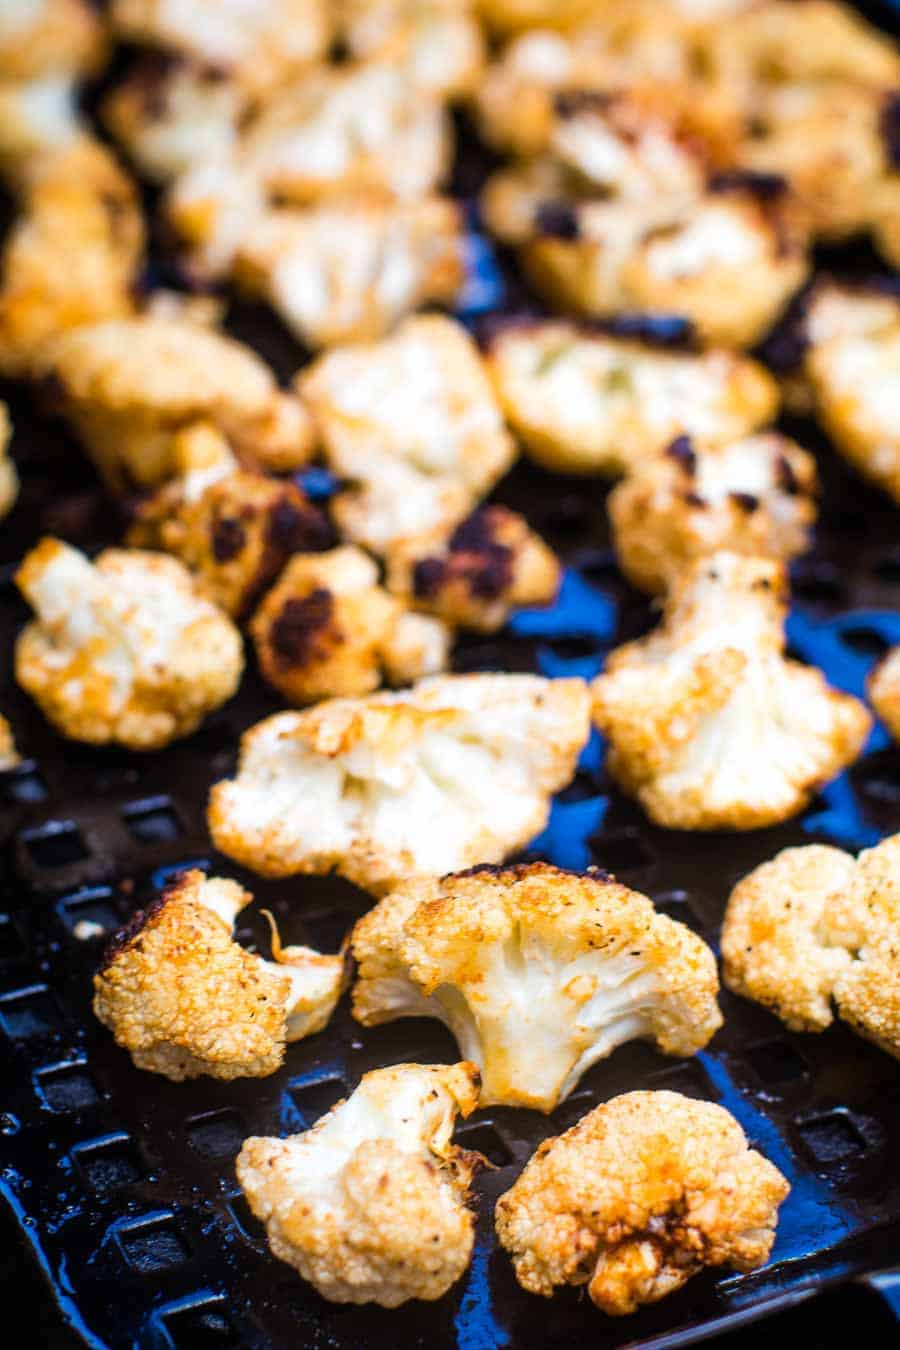 Cauliflower florets on the grill